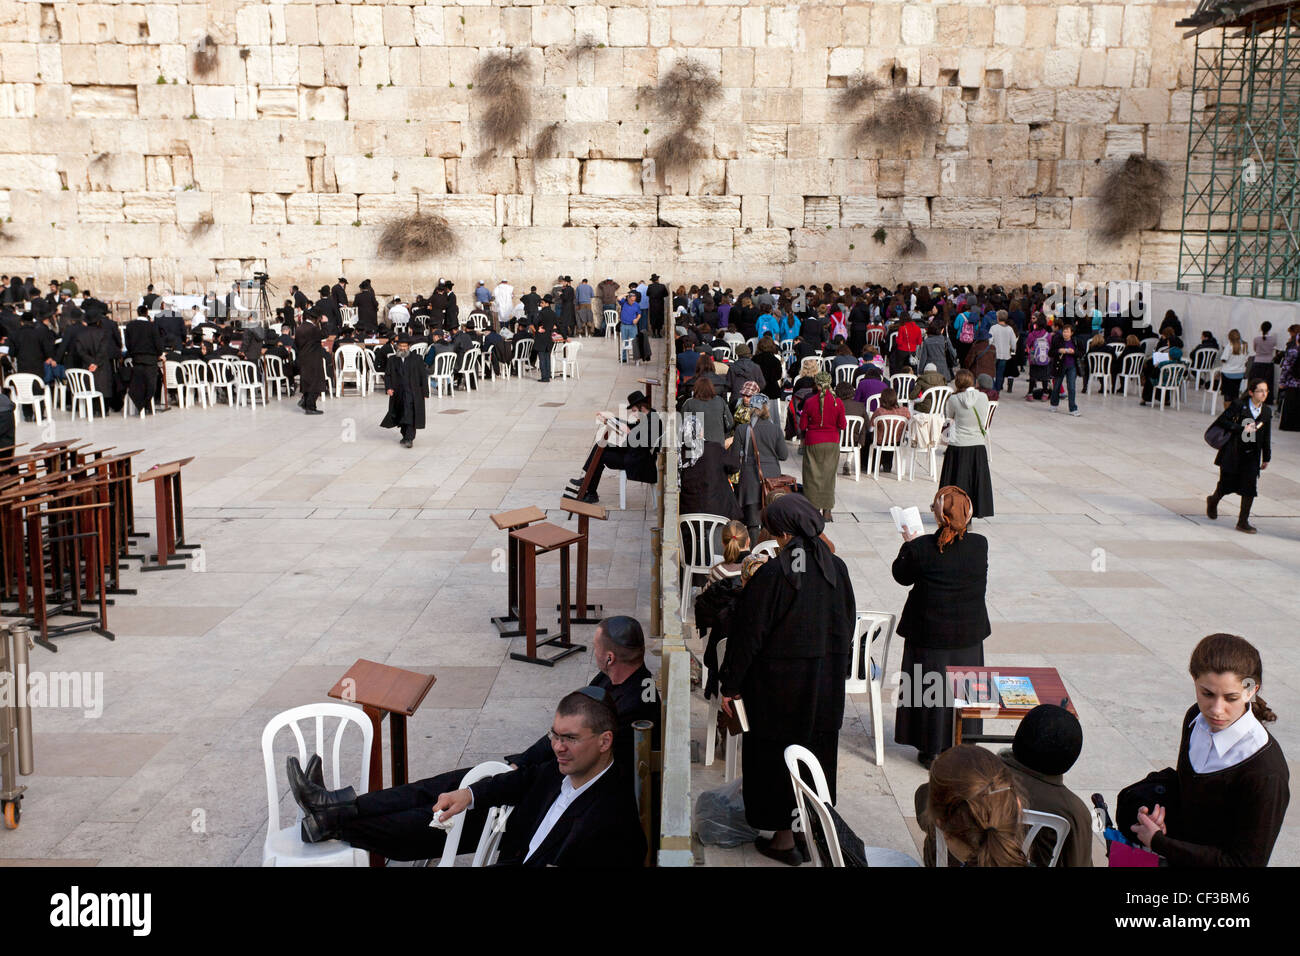 Israel,Jerusalem, The Wailing Wall, showing the wall that segregates men from women praying - Stock Image